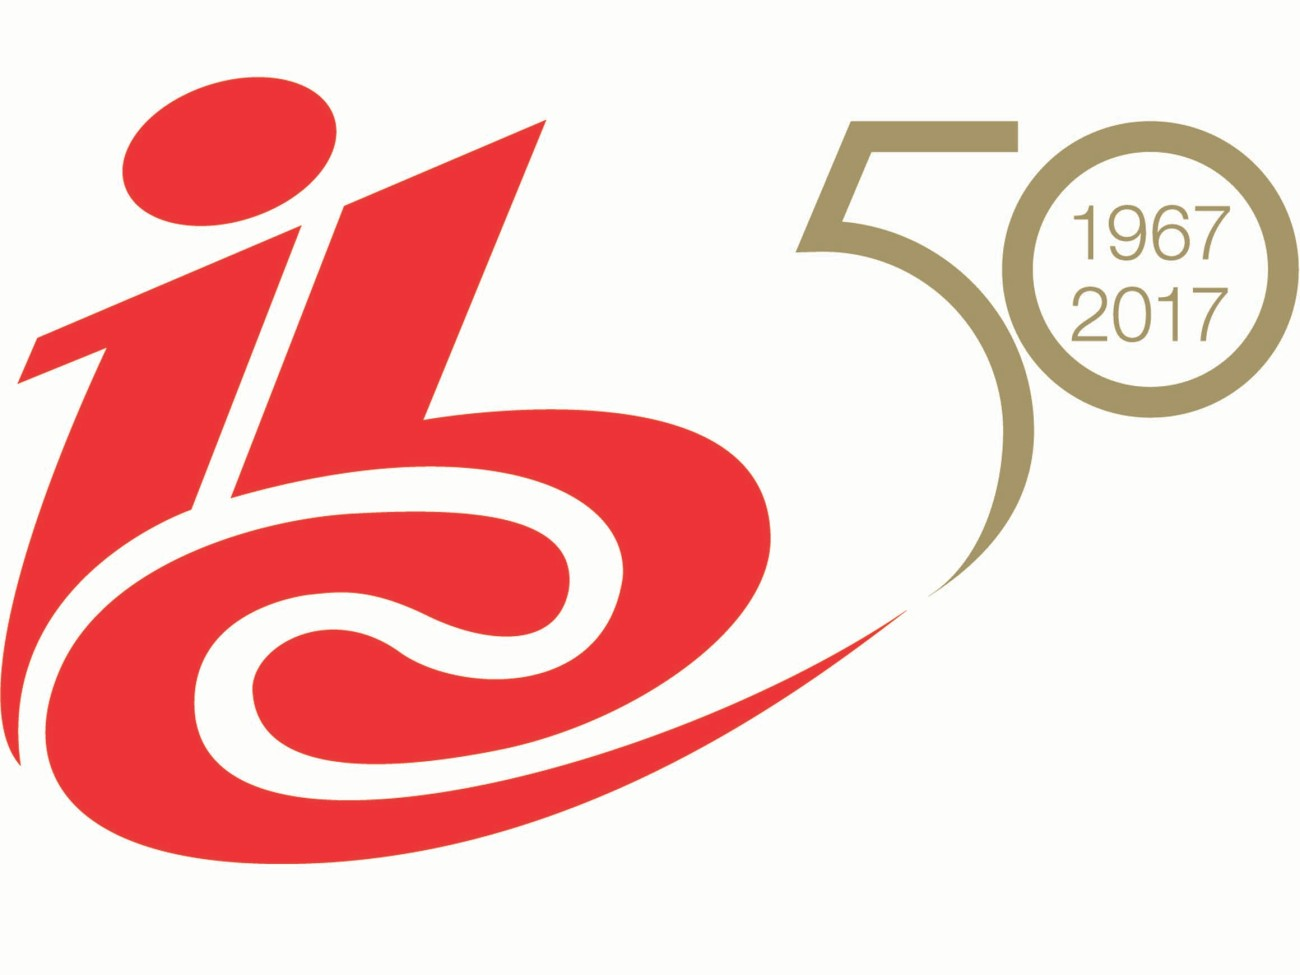 IP technology is a big part of IBC 2017